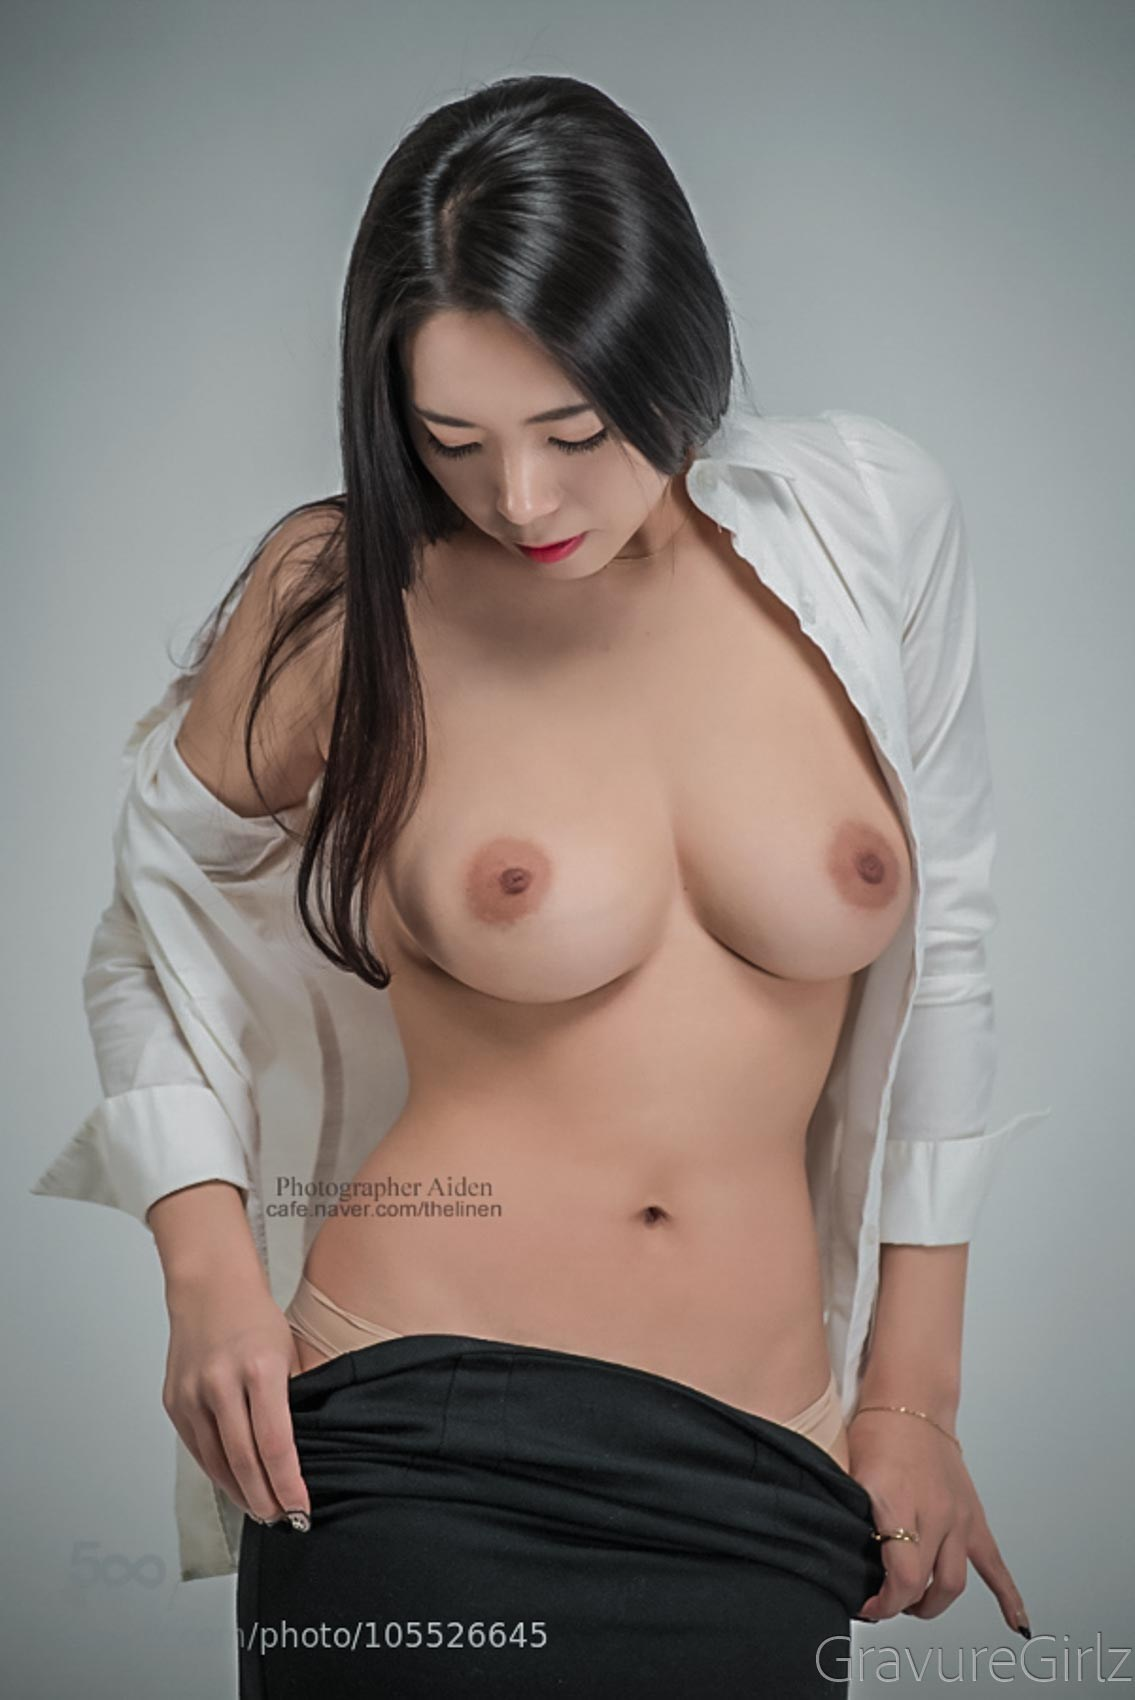 glamour Asian girl nude